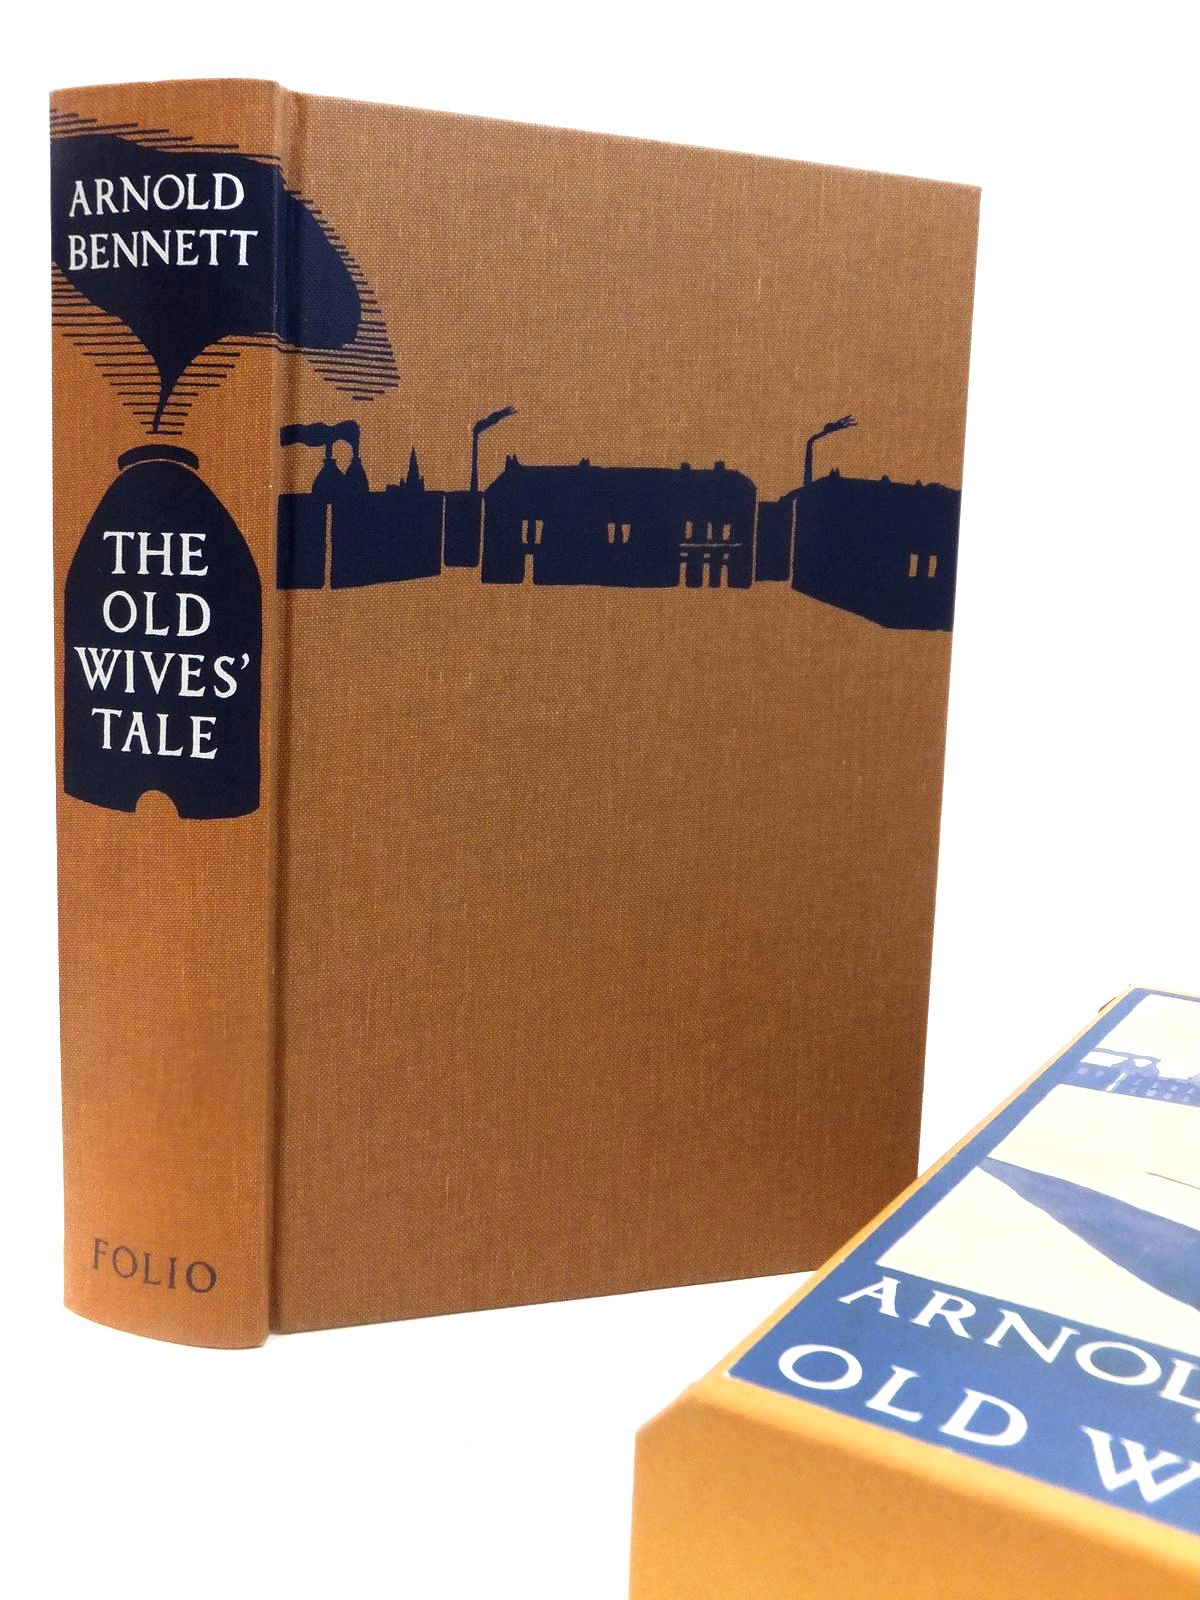 Photo of THE OLD WIVES' TALE written by Bennett, Arnold illustrated by Harte, Glynn Boyd published by Folio Society (STOCK CODE: 2121980)  for sale by Stella & Rose's Books